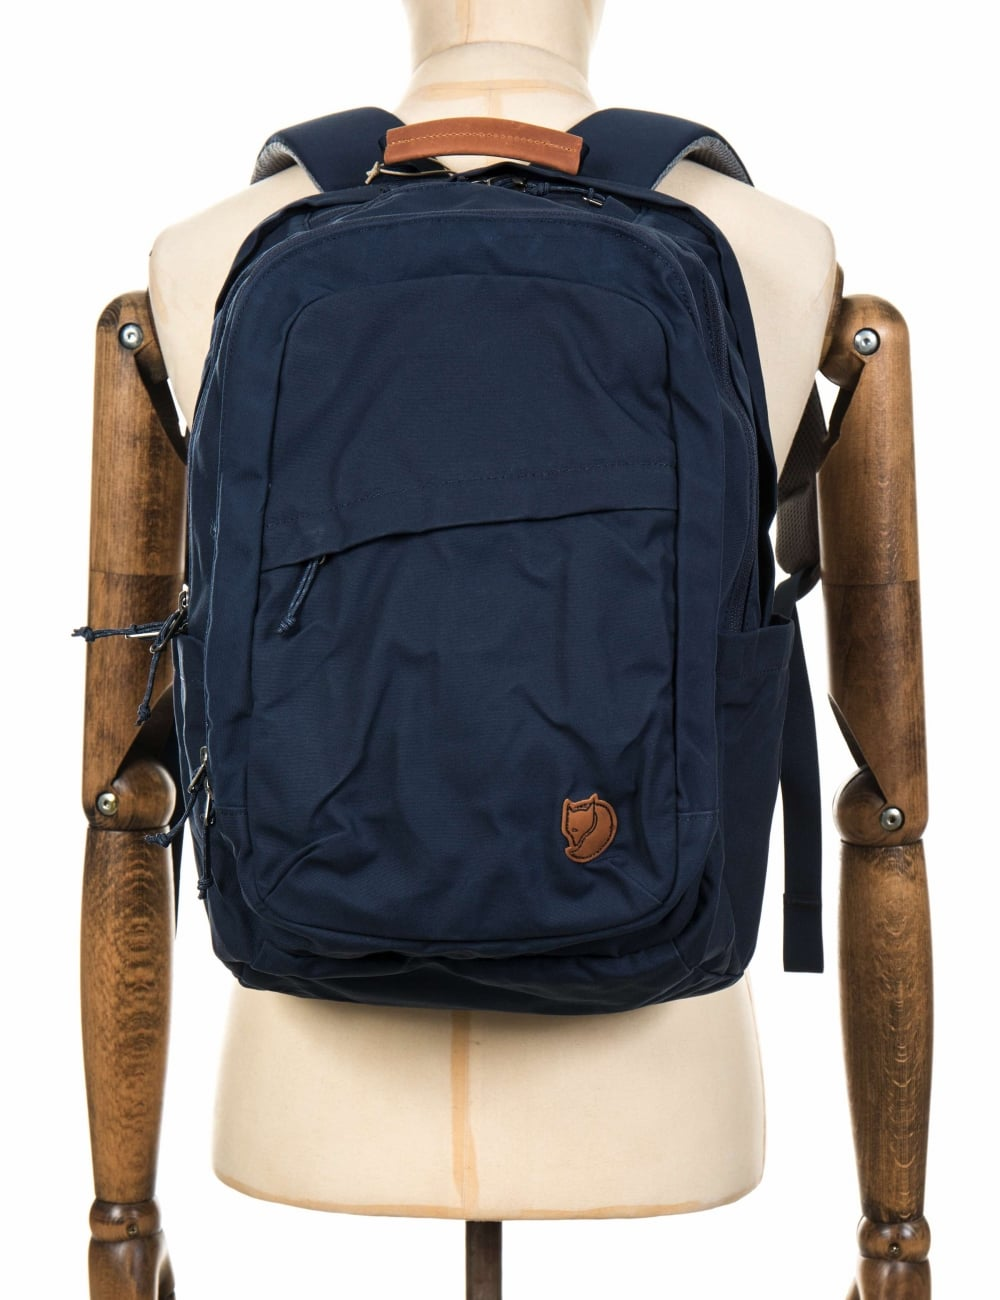 separation shoes aade9 f4717 Raven 28L Backpack - Navy